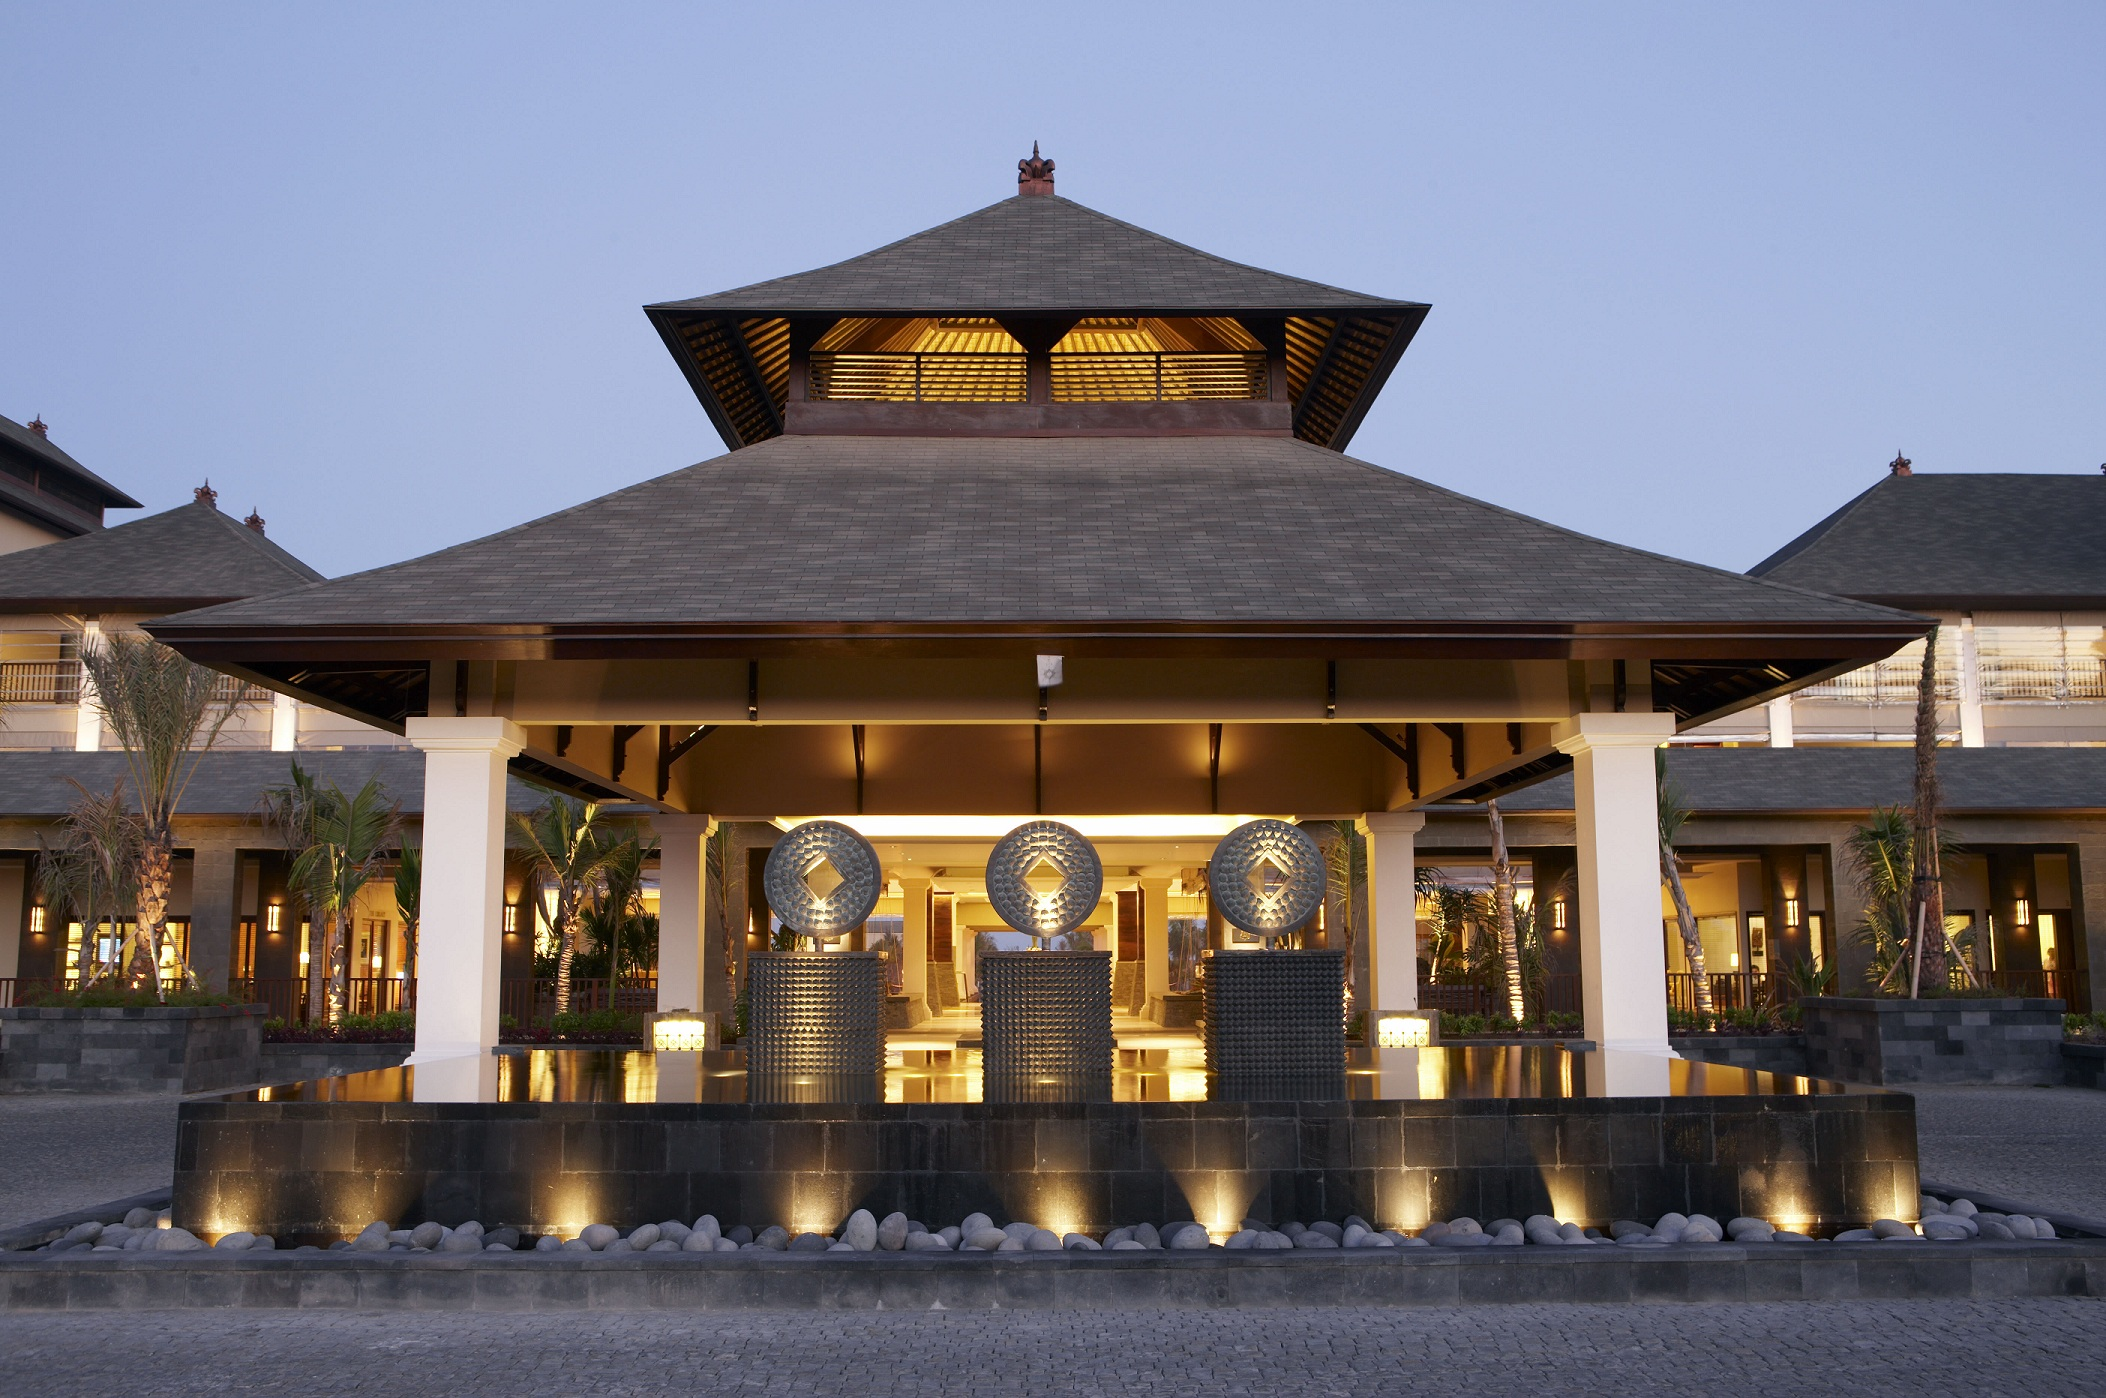 st regis resort - bali - 2009    The luxury 5 Star St Regis Resort in Bali comprises 124 Suite and villa rooms, extensive central facilities, spa and conference facilities. The villas were designed to create the feeling of occupying a private residence.